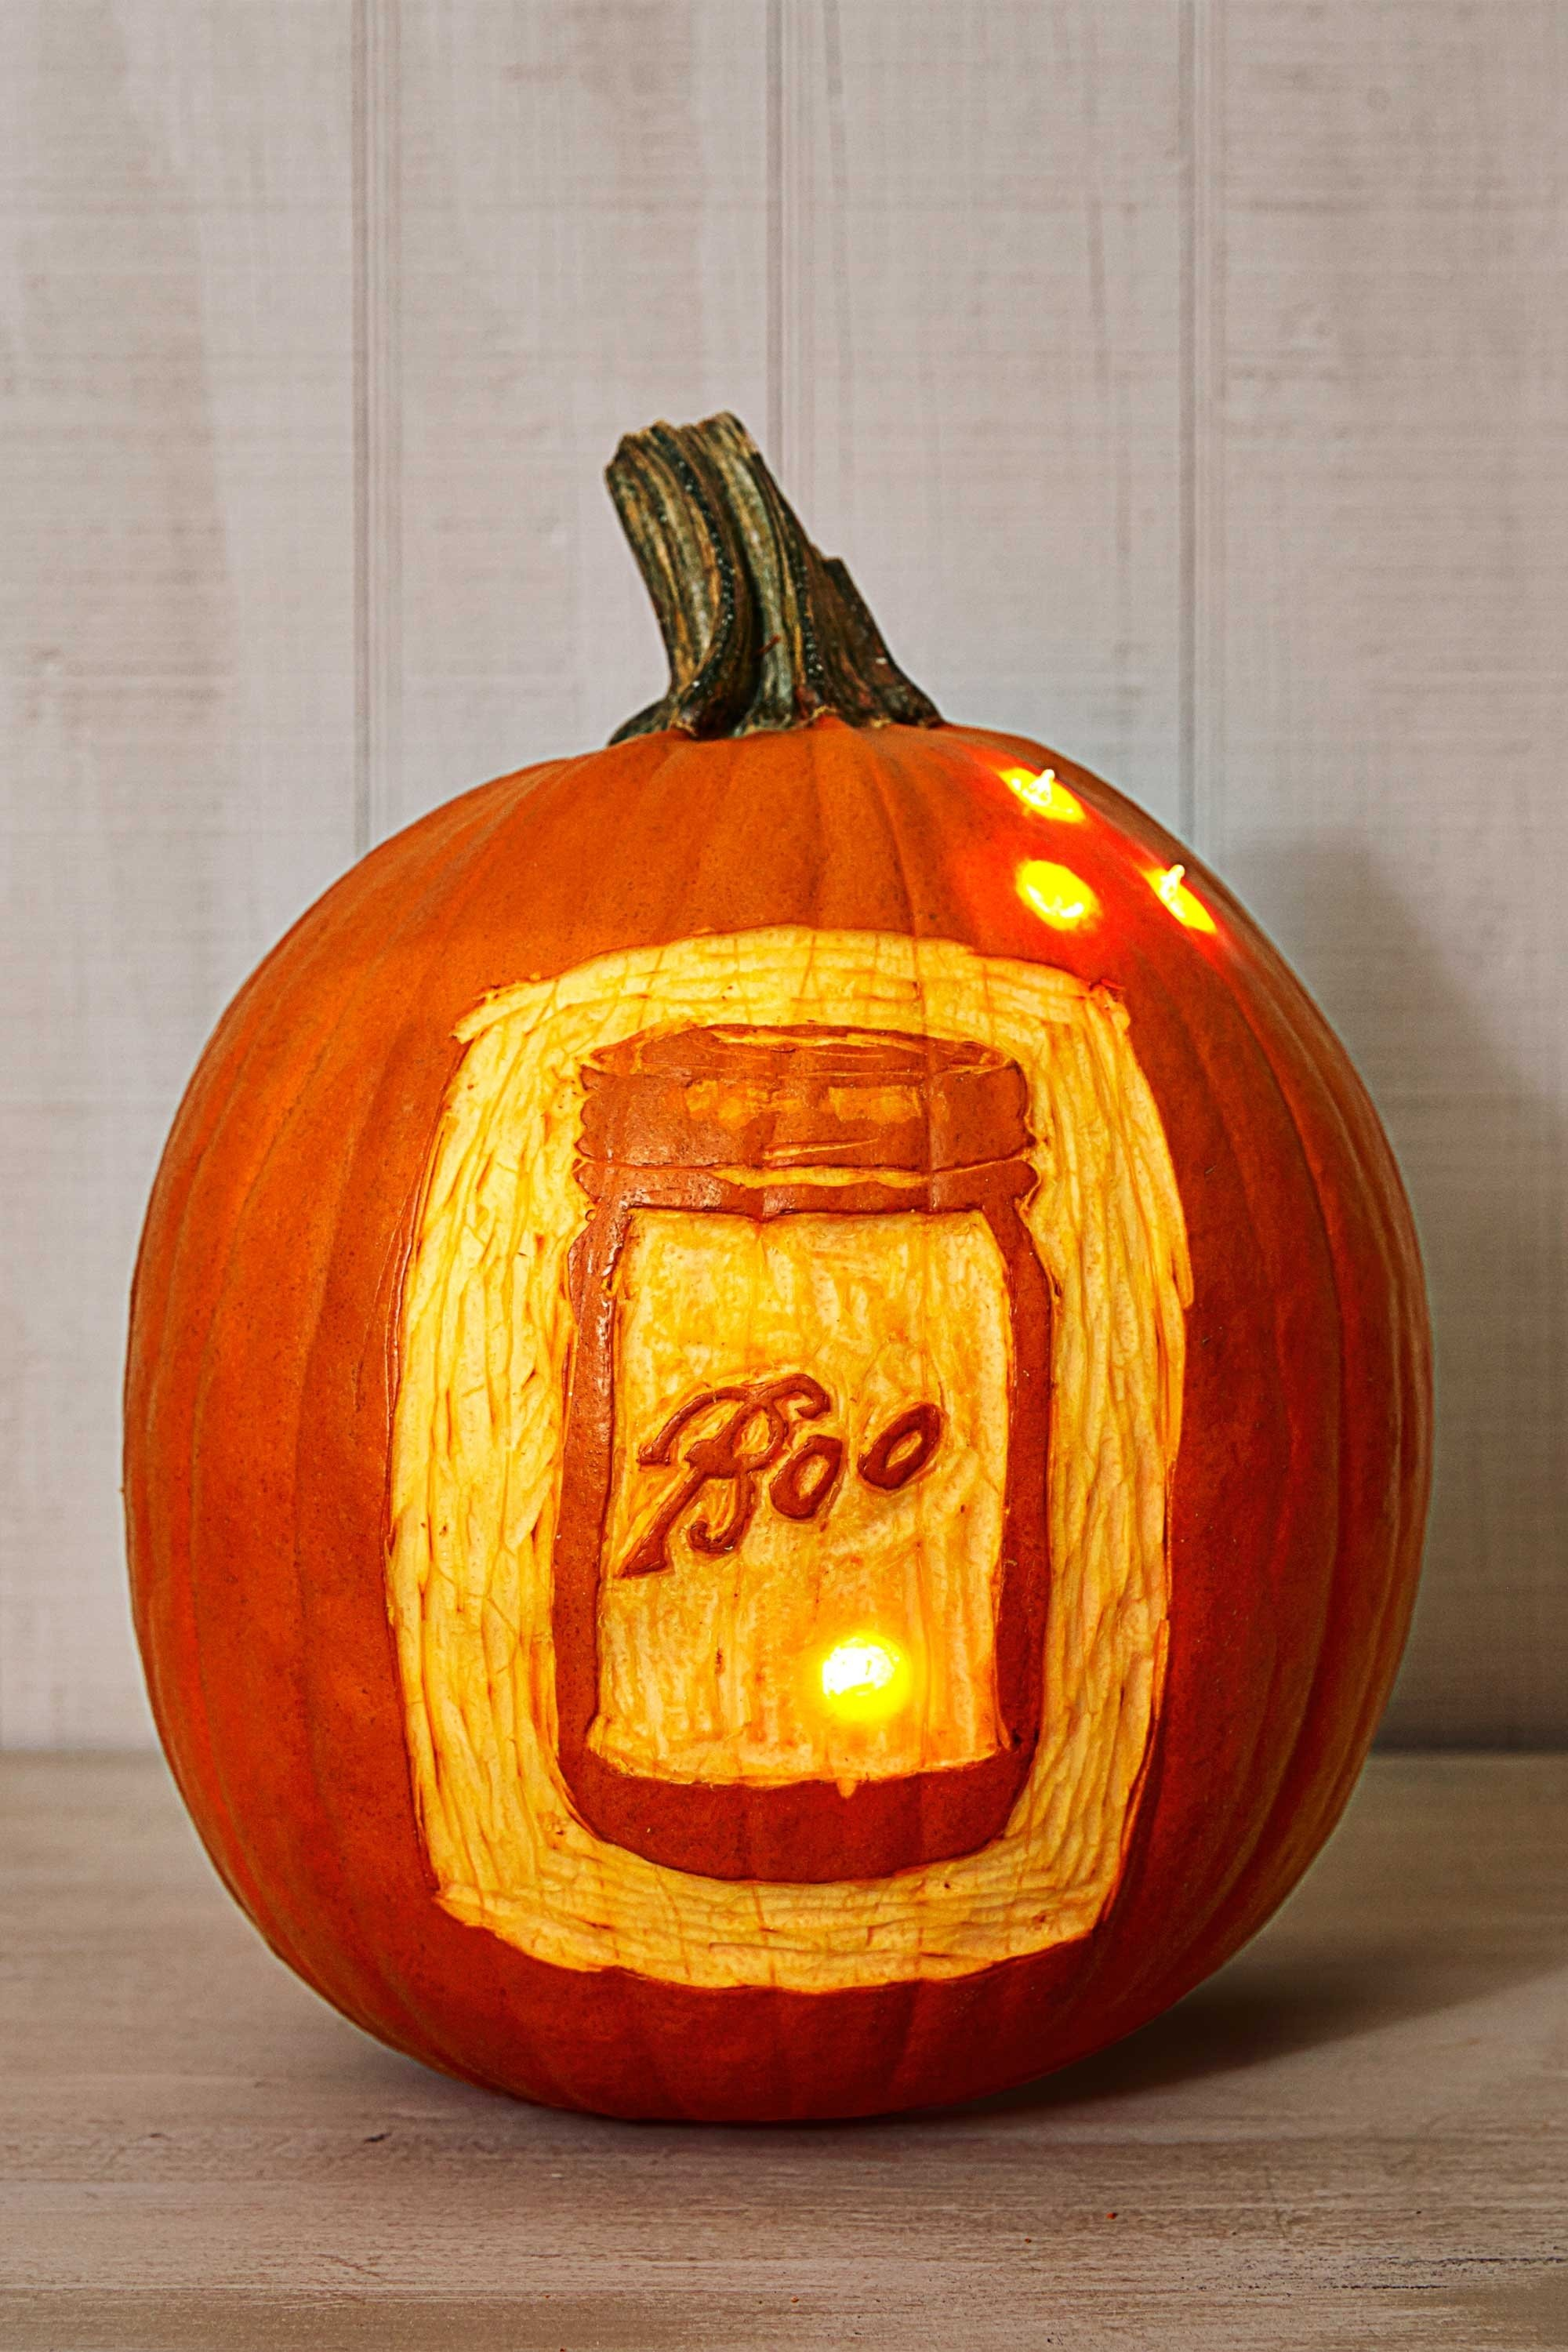 10 Attractive Good Easy Pumpkin Carving Ideas 50 easy pumpkin carving ideas 2017 cool patterns and designs for 5 2020